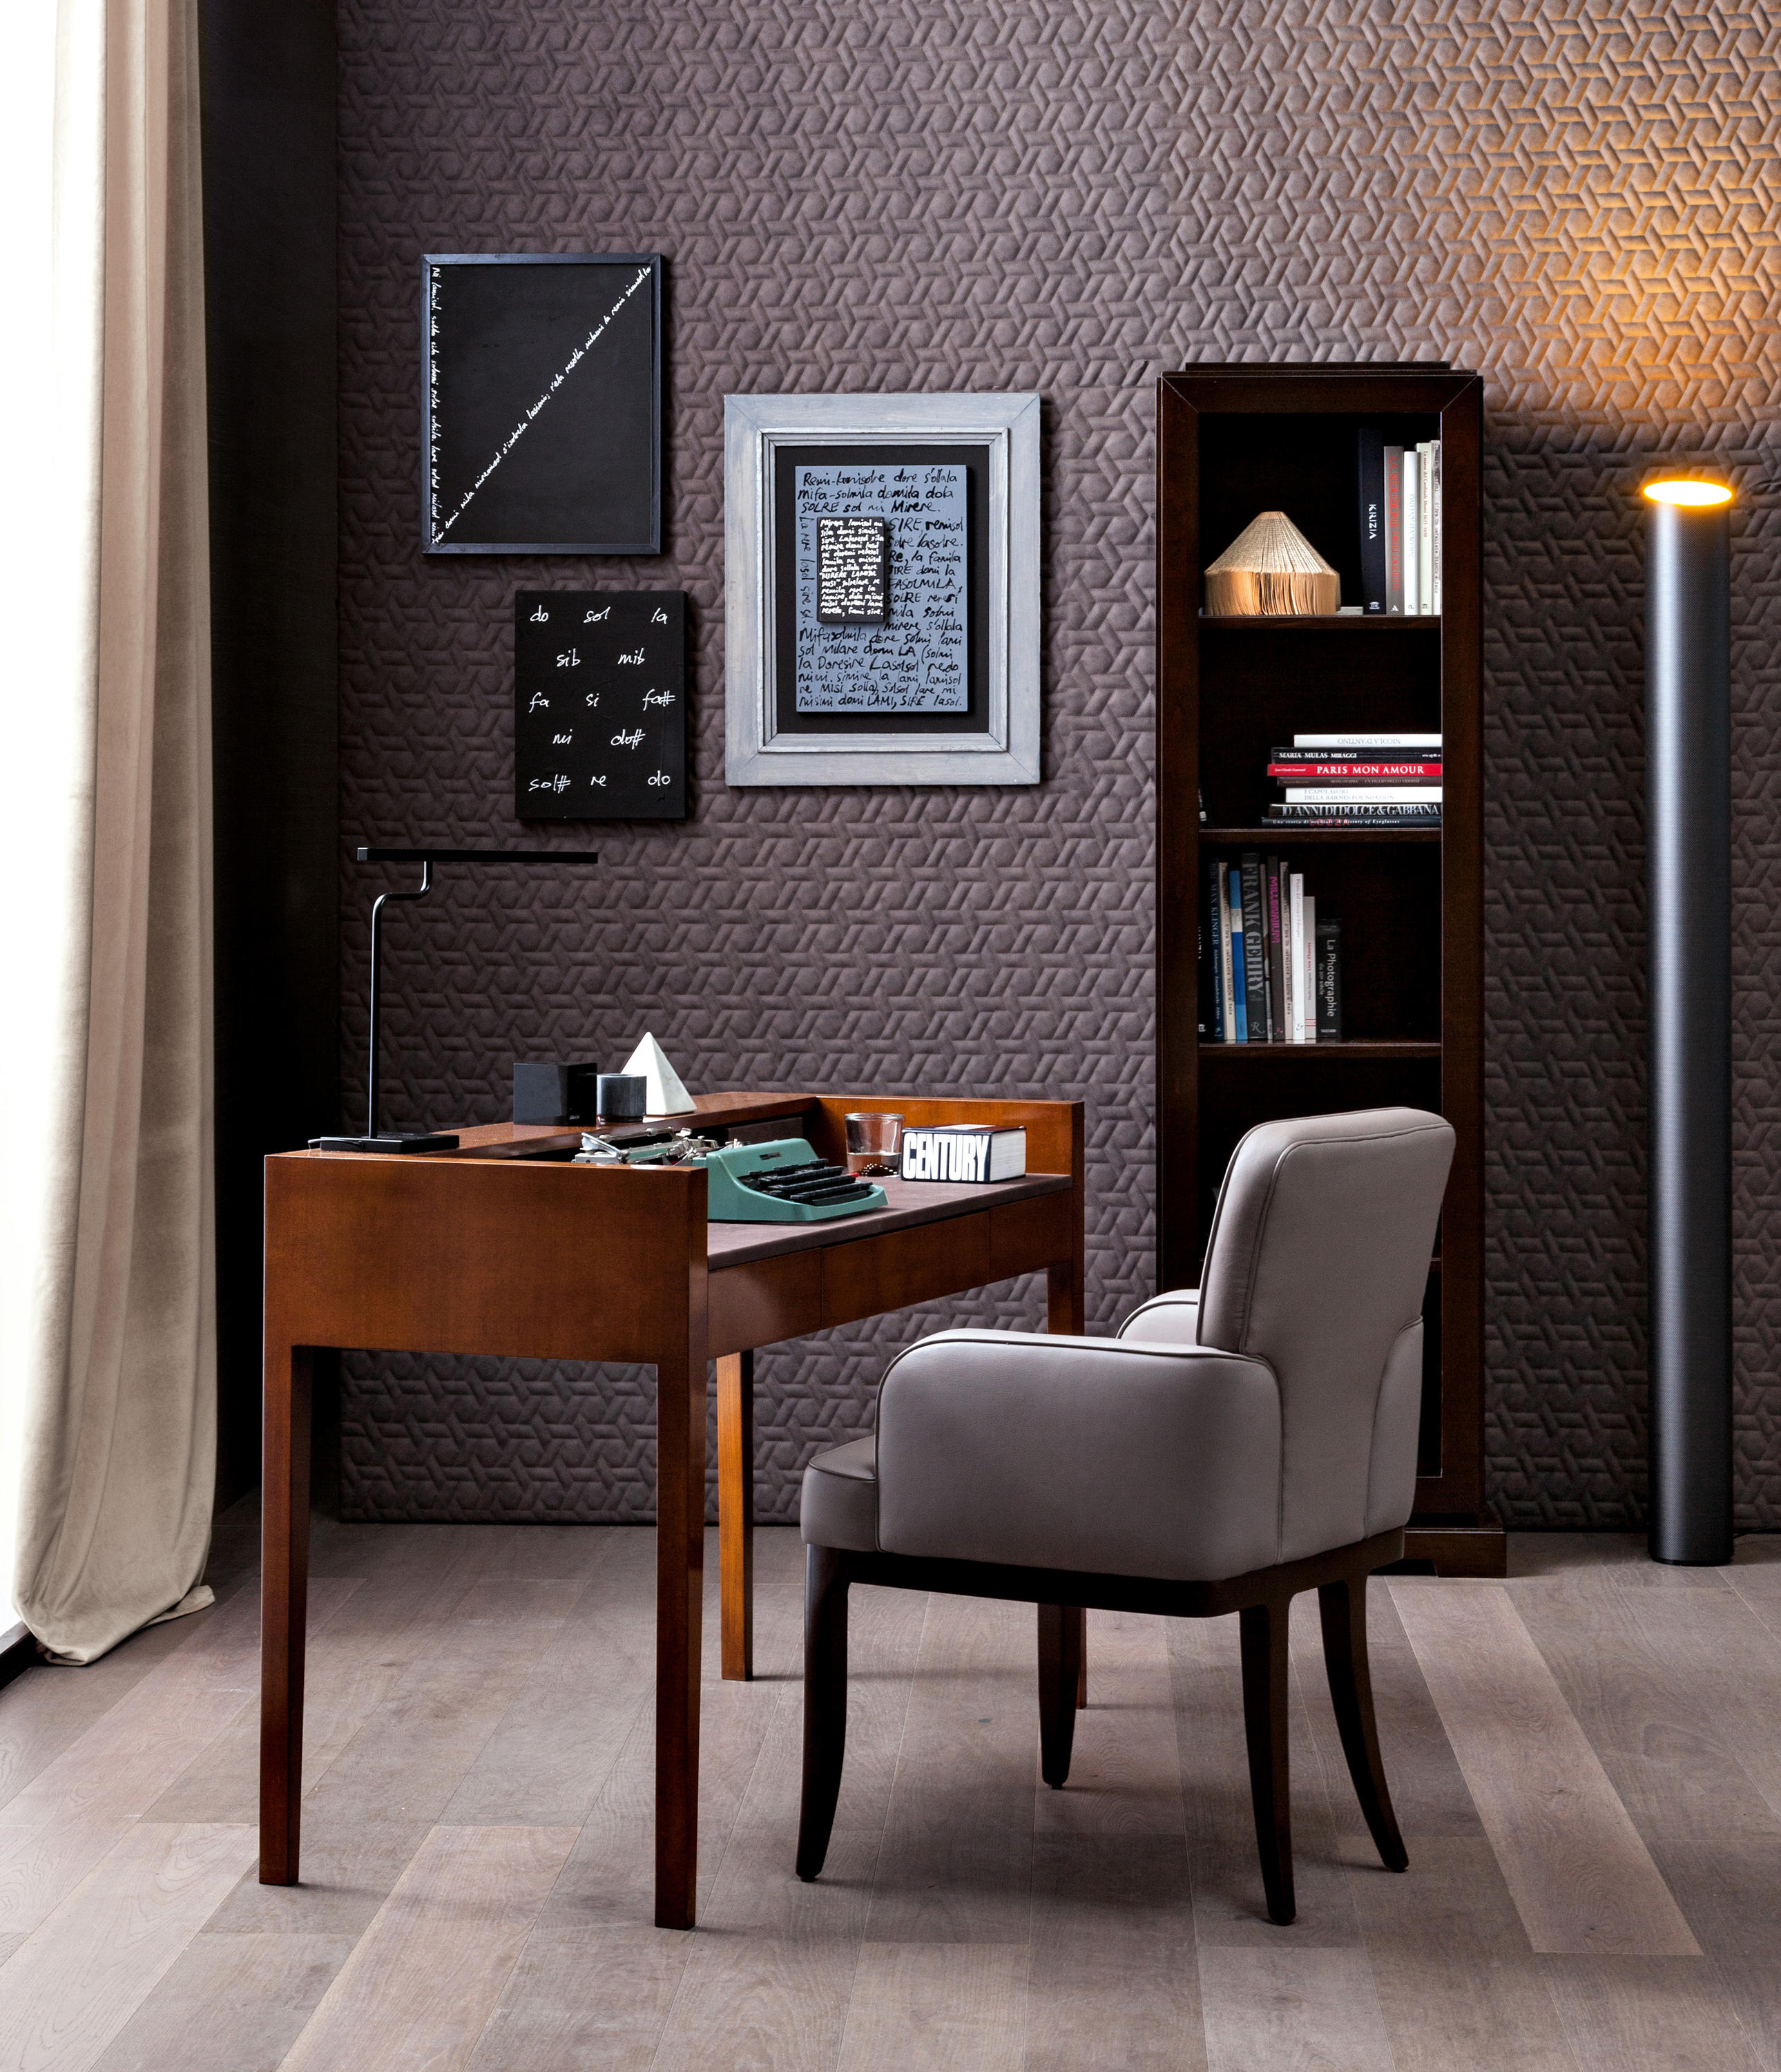 waldorf desk philipp selva bureaus from selva architonic. Black Bedroom Furniture Sets. Home Design Ideas